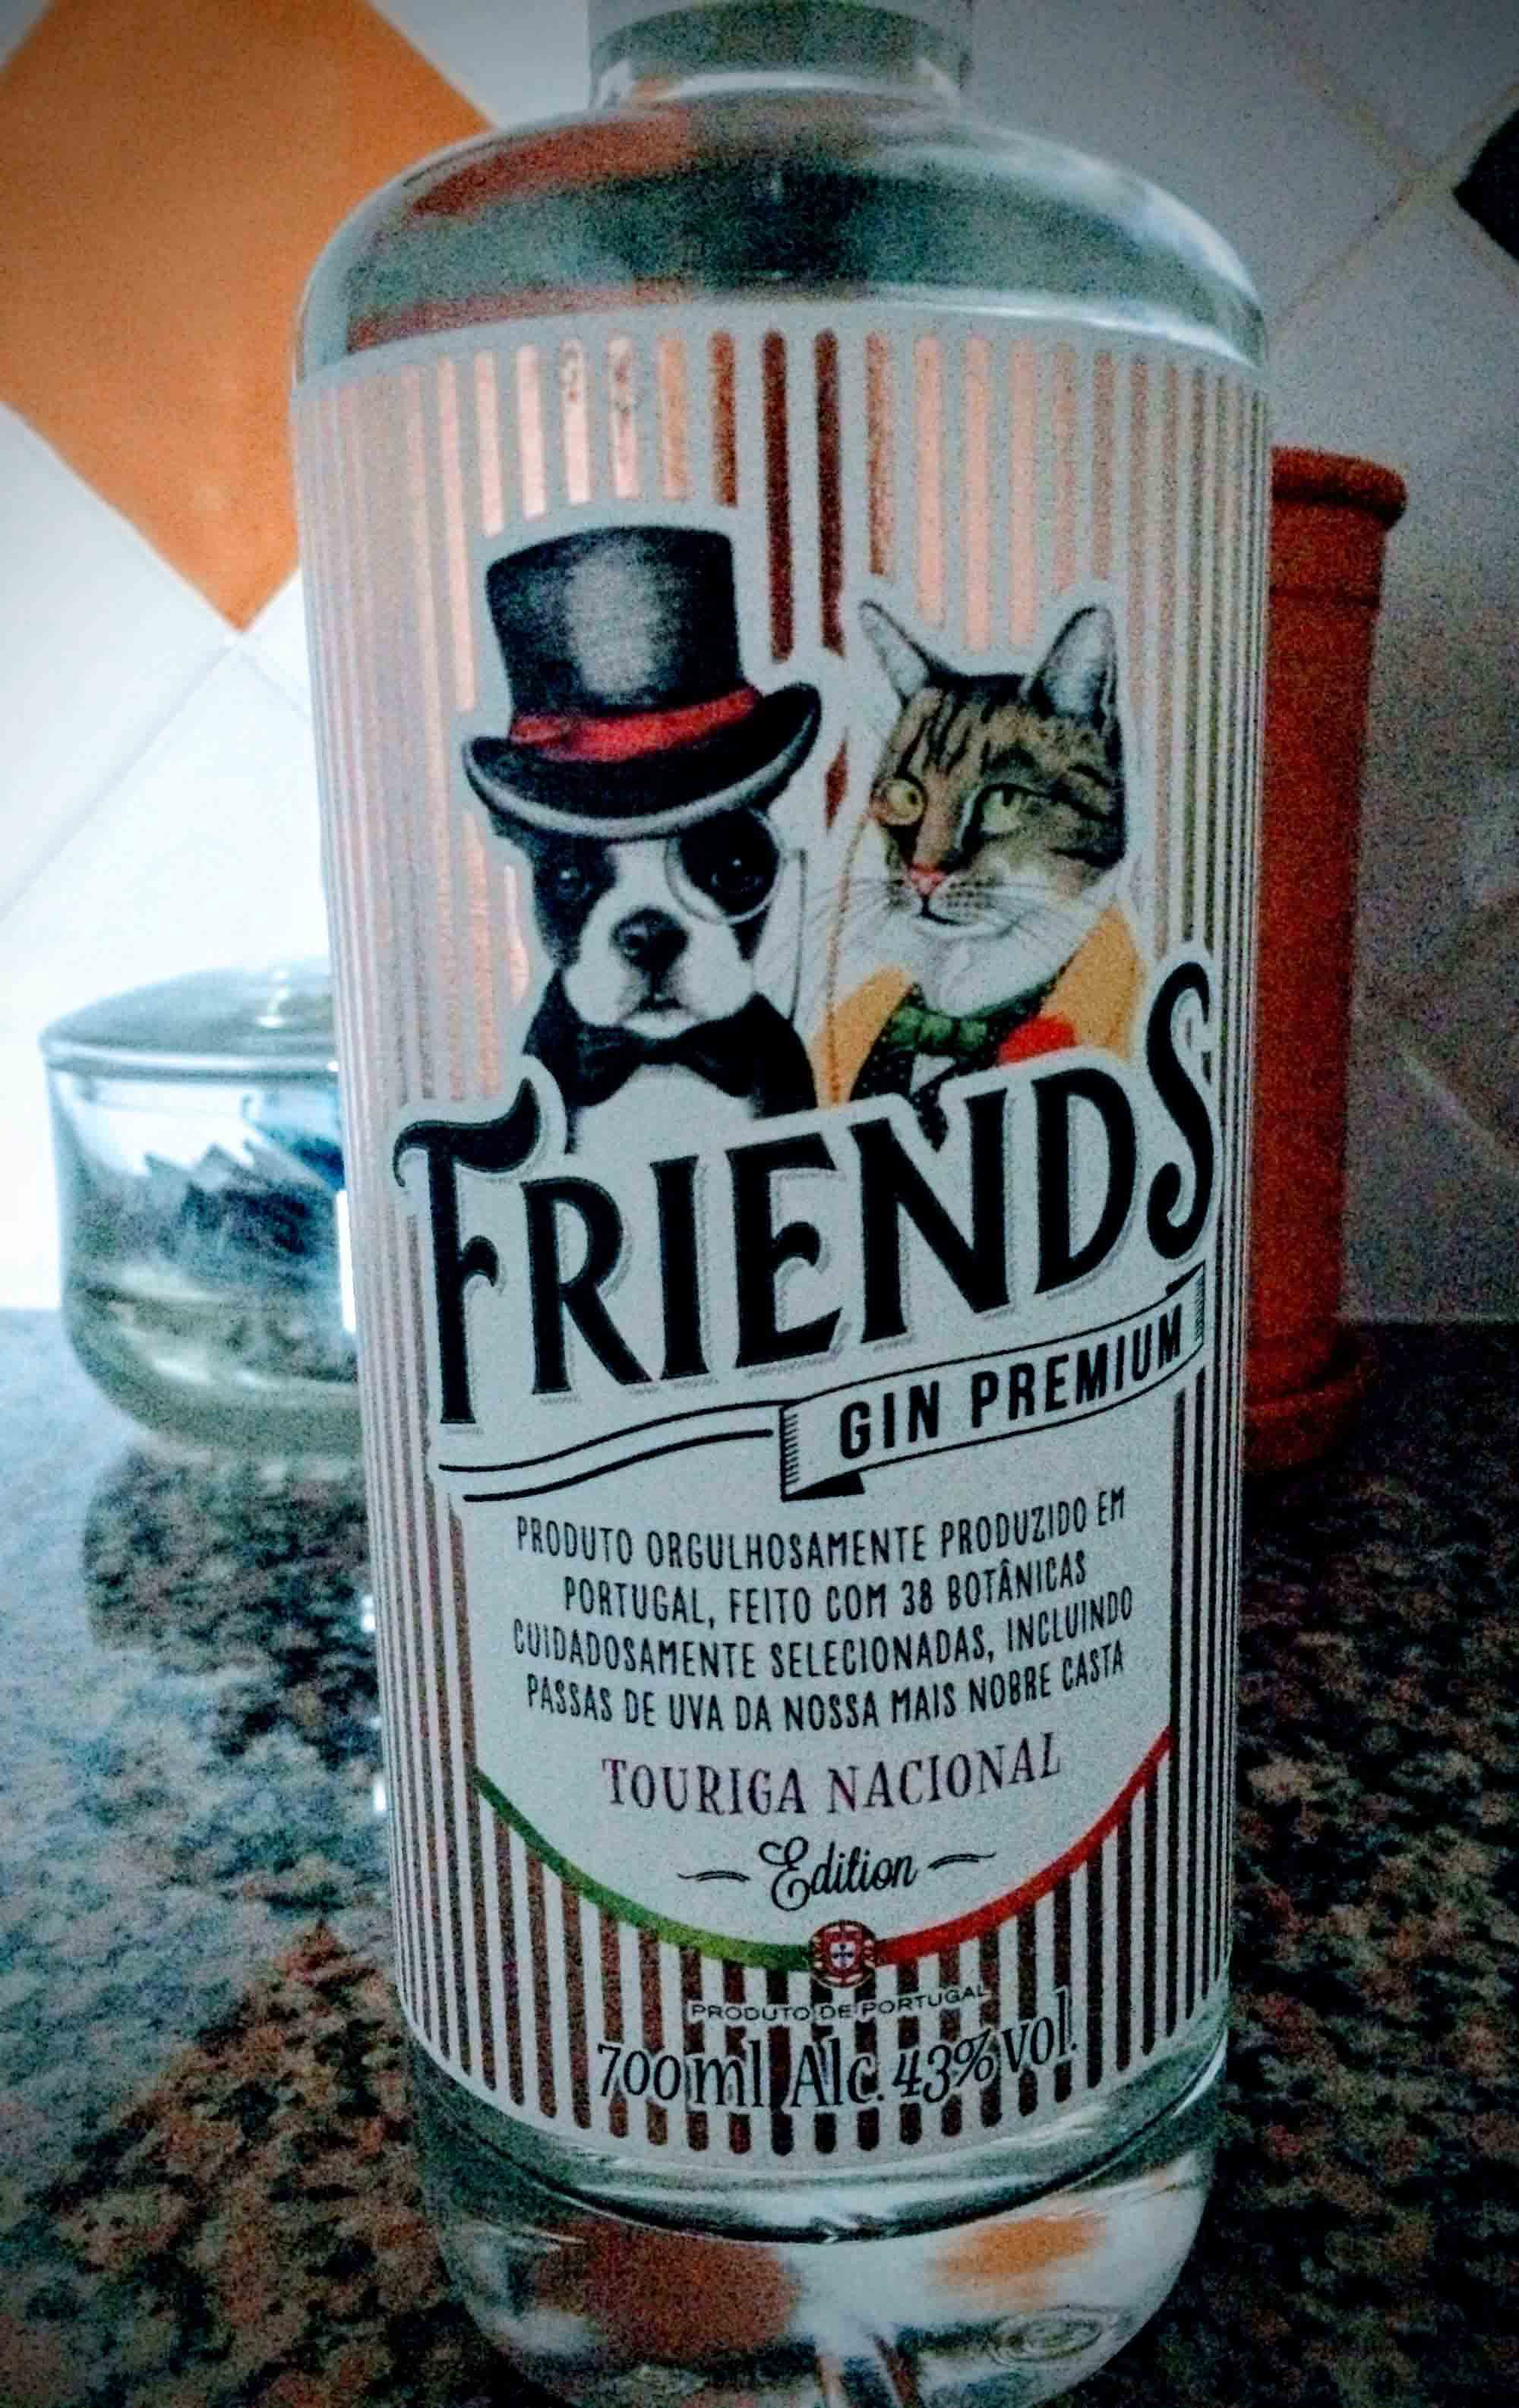 Friends gin